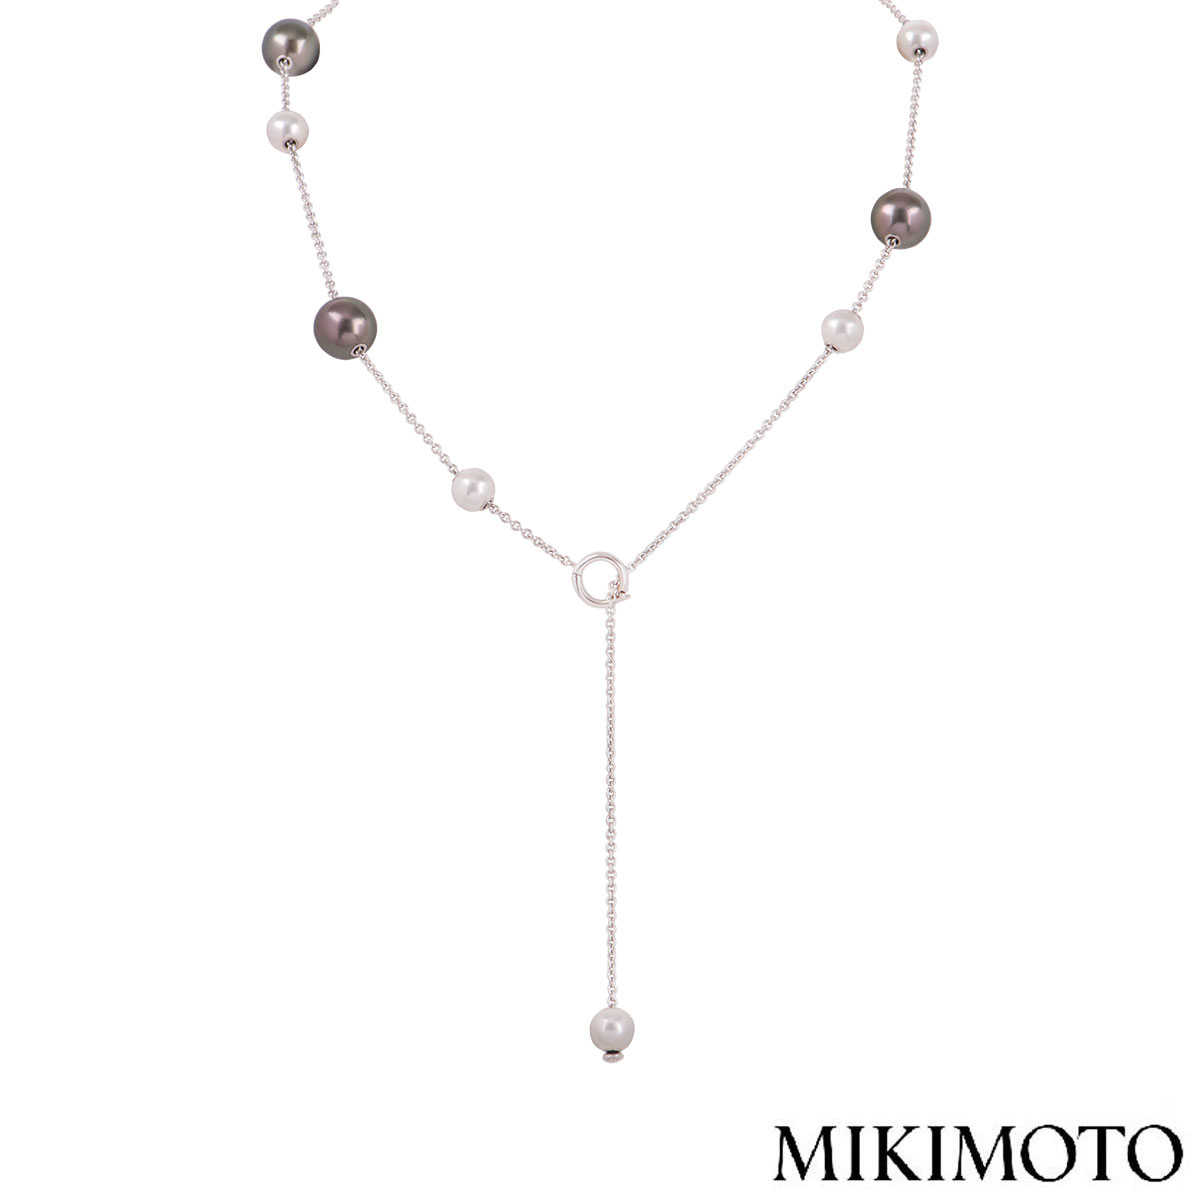 Mikimoto White And Grey Pearl Necklace